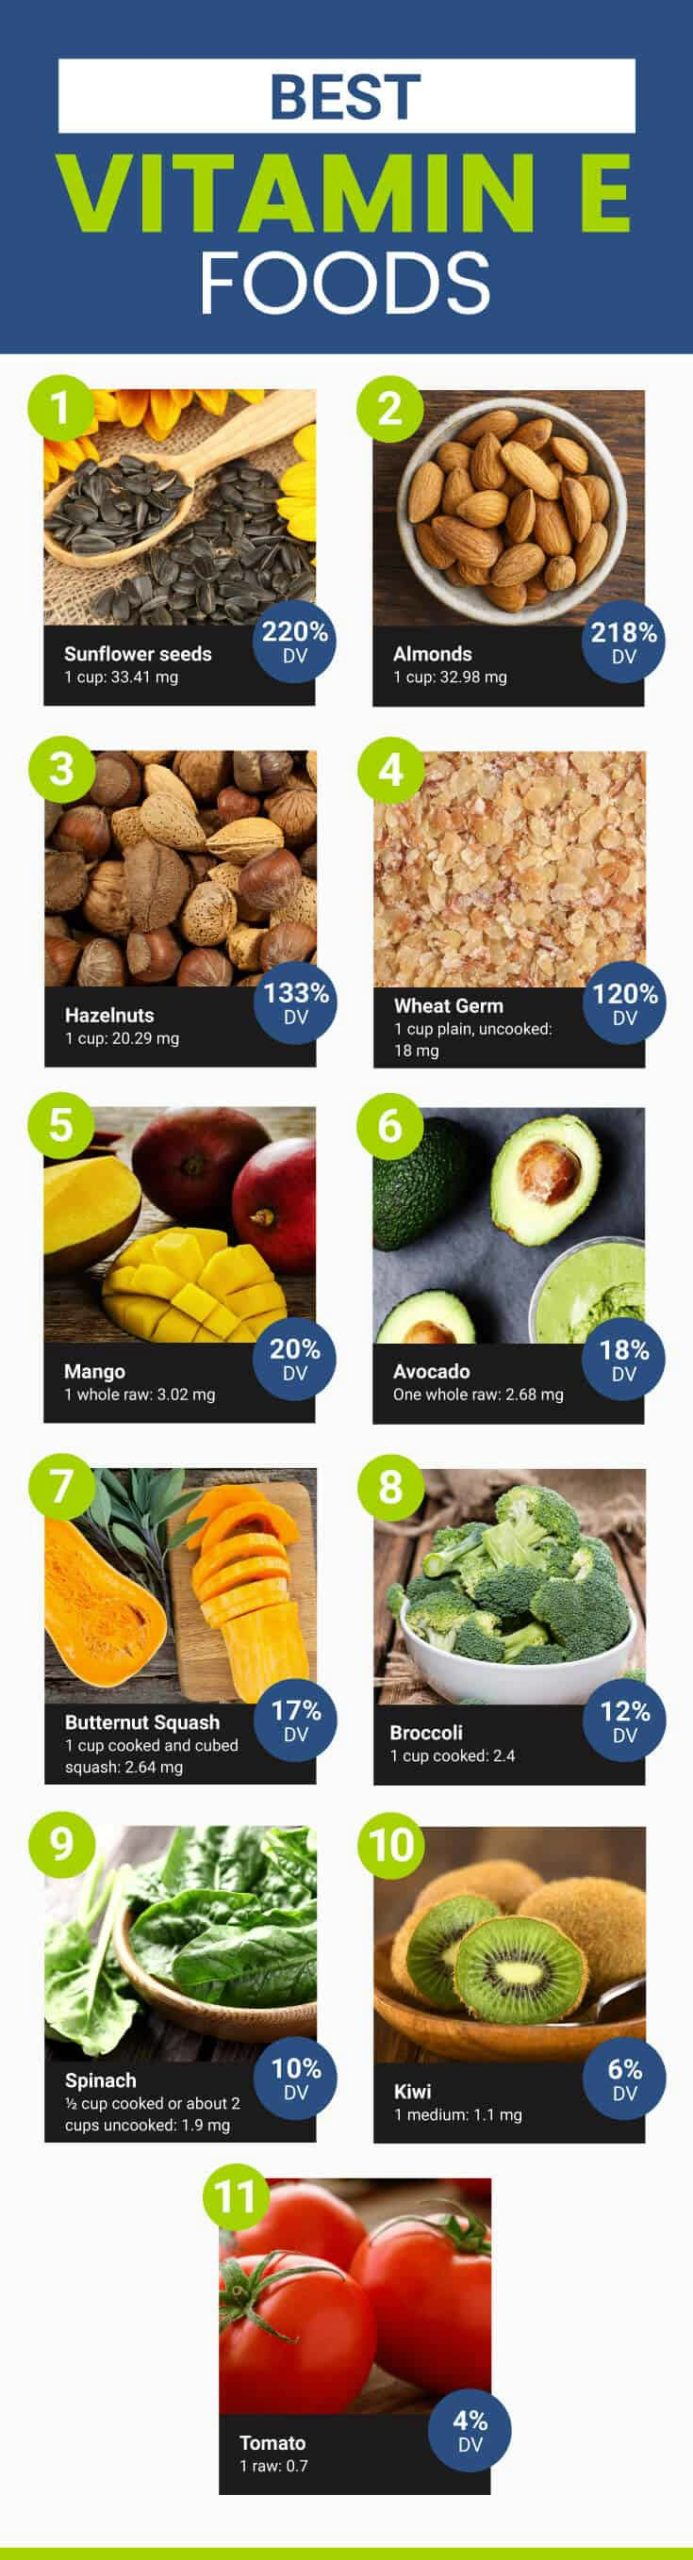 Vitamin E foods - MKexpress.net